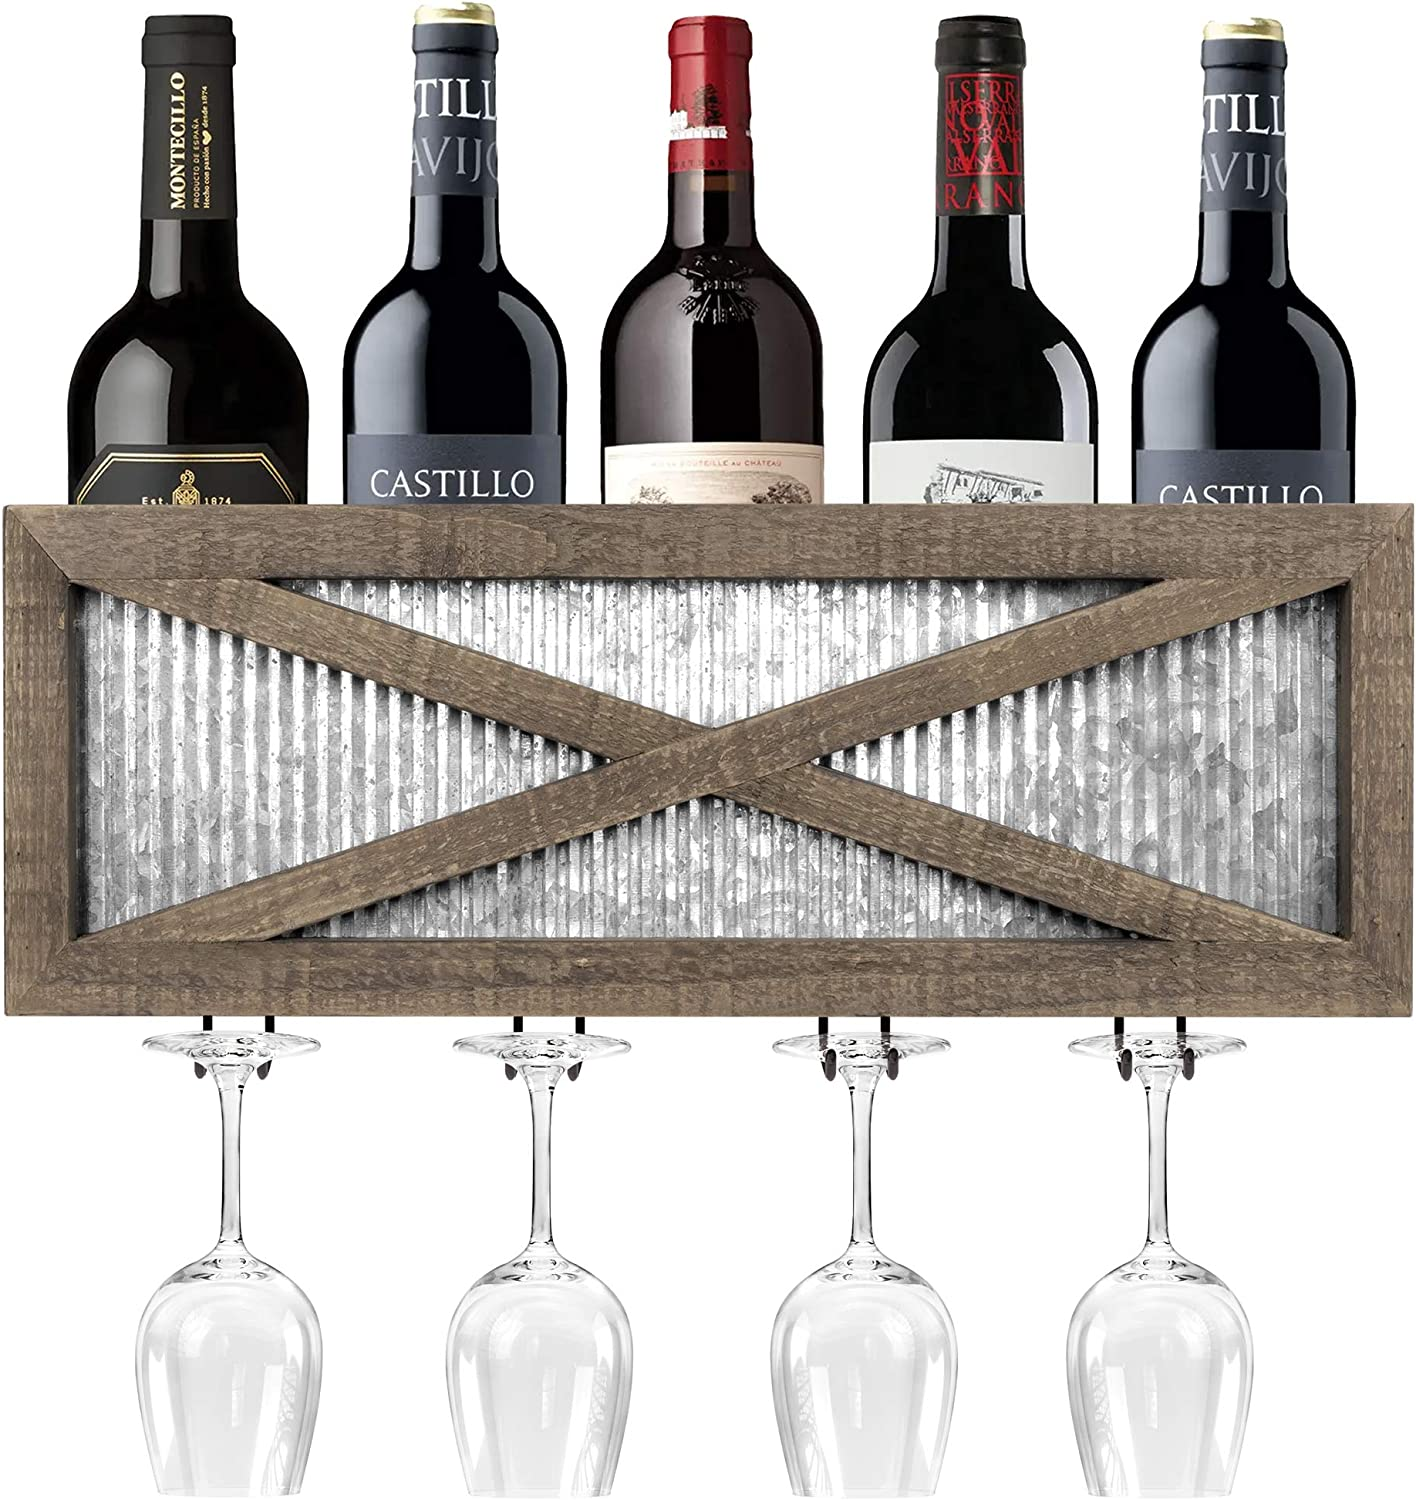 Autumn Alley Rustic Barn Door Wine Rack with Glass Storage - Country Home Decor Rustic Farmhouse for Kitchen, Dining Room – Wood and Metal Wine Wall Mount Storage – Holds 5 Bottles, 4 Stemmed Glasses